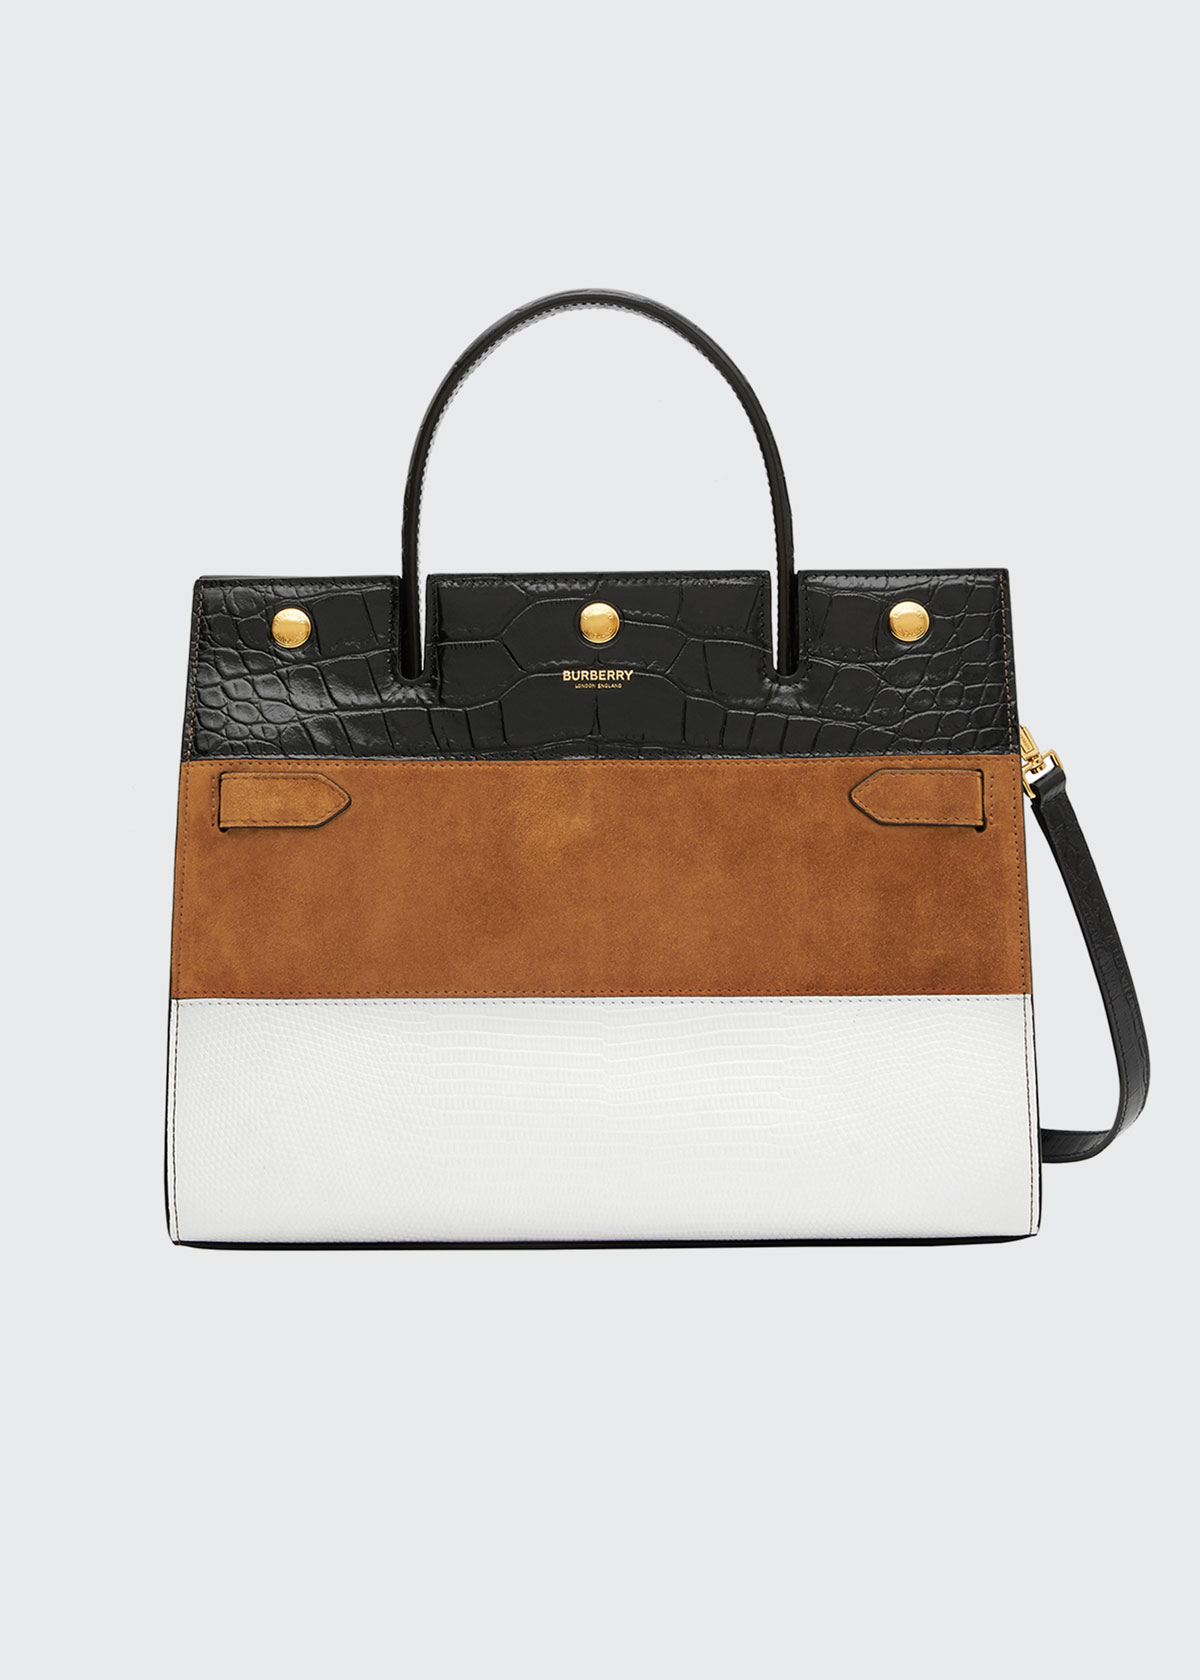 Burberry Medium Title Mixed Leather Top Handle Bag In White/ Maple